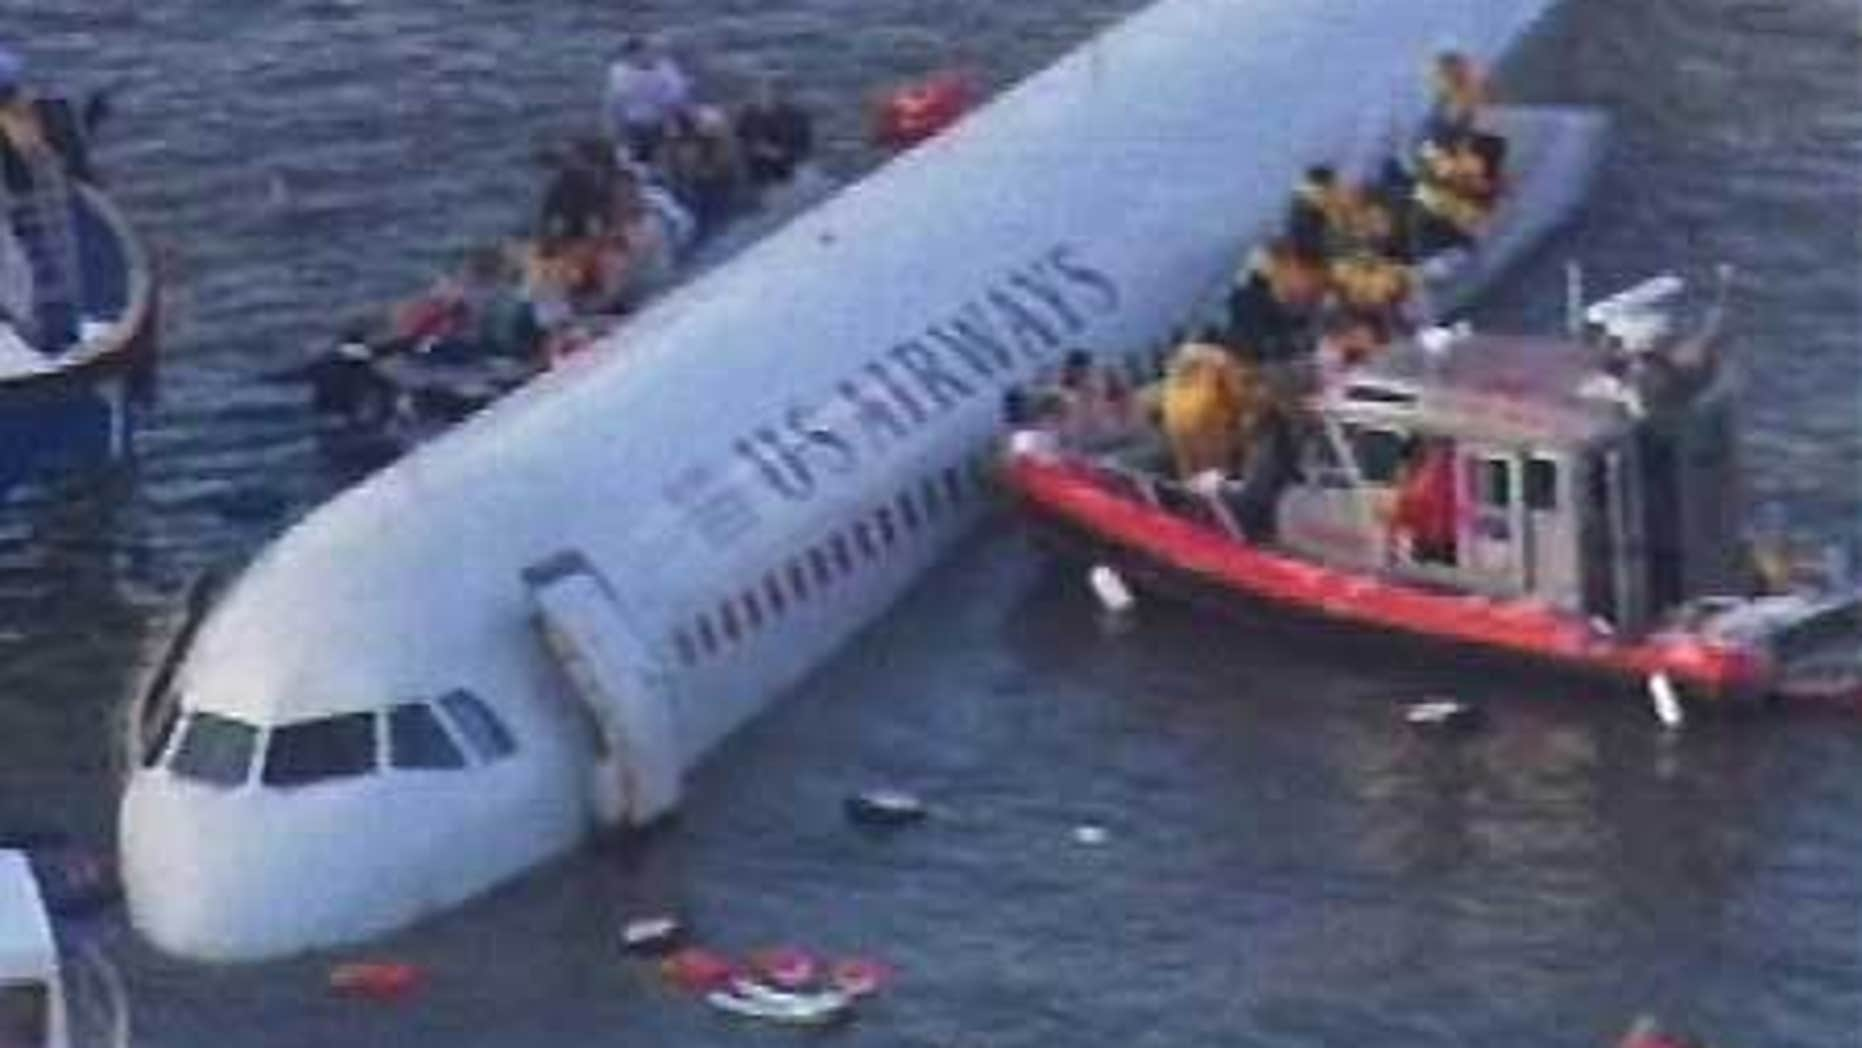 Jan. 15: A US Airways plane floats in the Hudson River in New York City after birds hit the engines and it crashed.